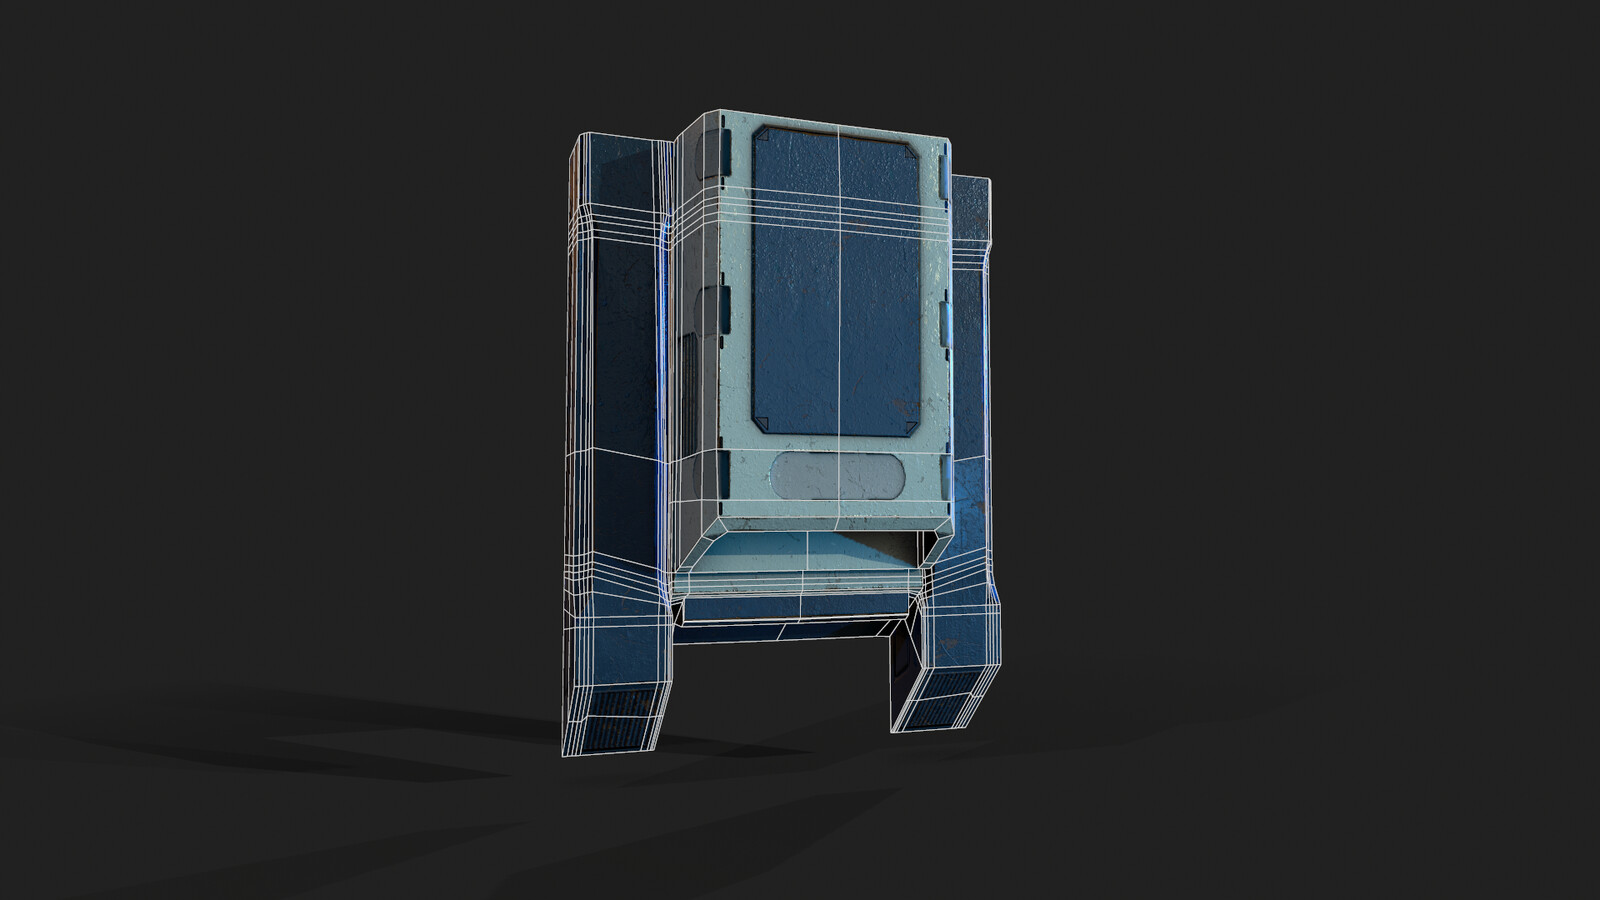 AC - Low Poly Baked